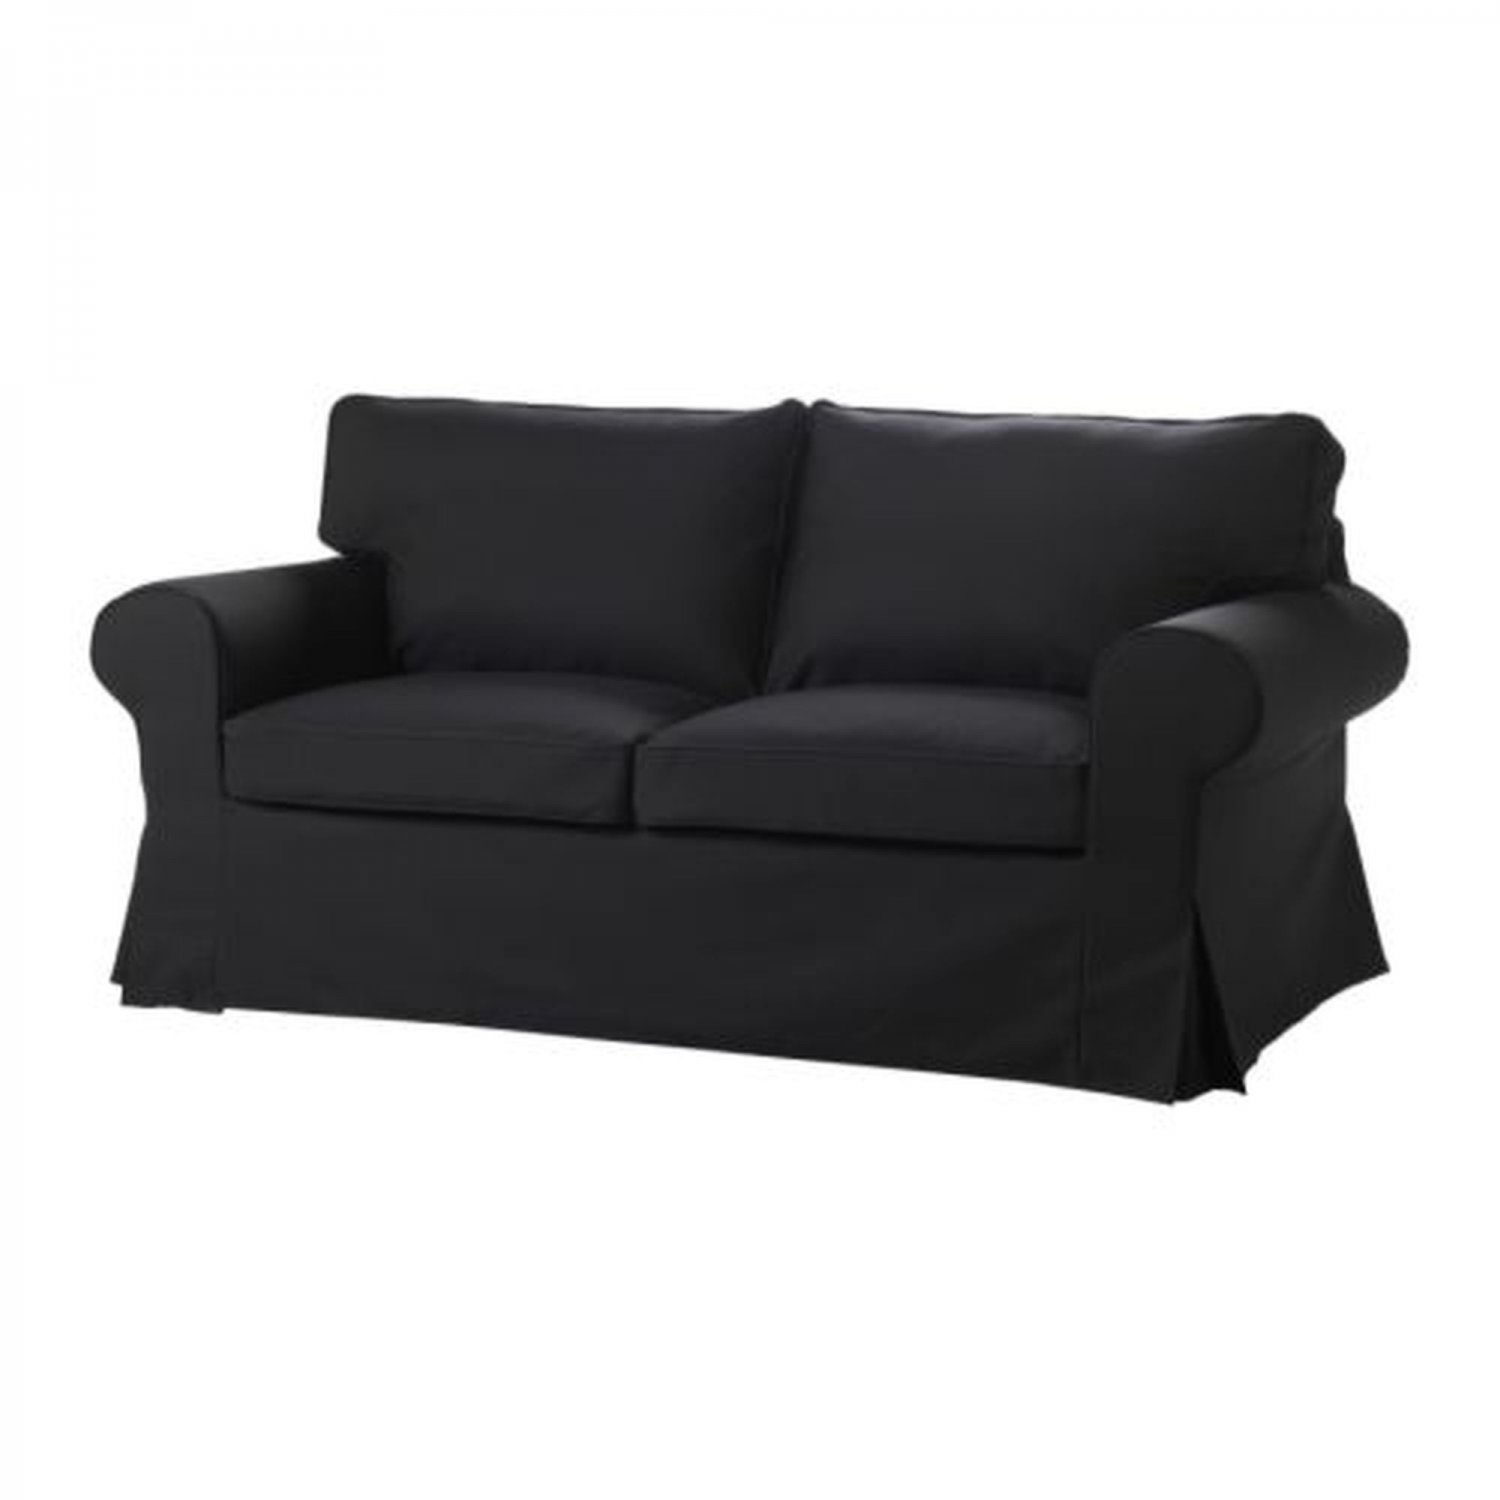 Ikea ektorp sofa bed slipcover sofabed cover idemo black for Housse sofa ikea